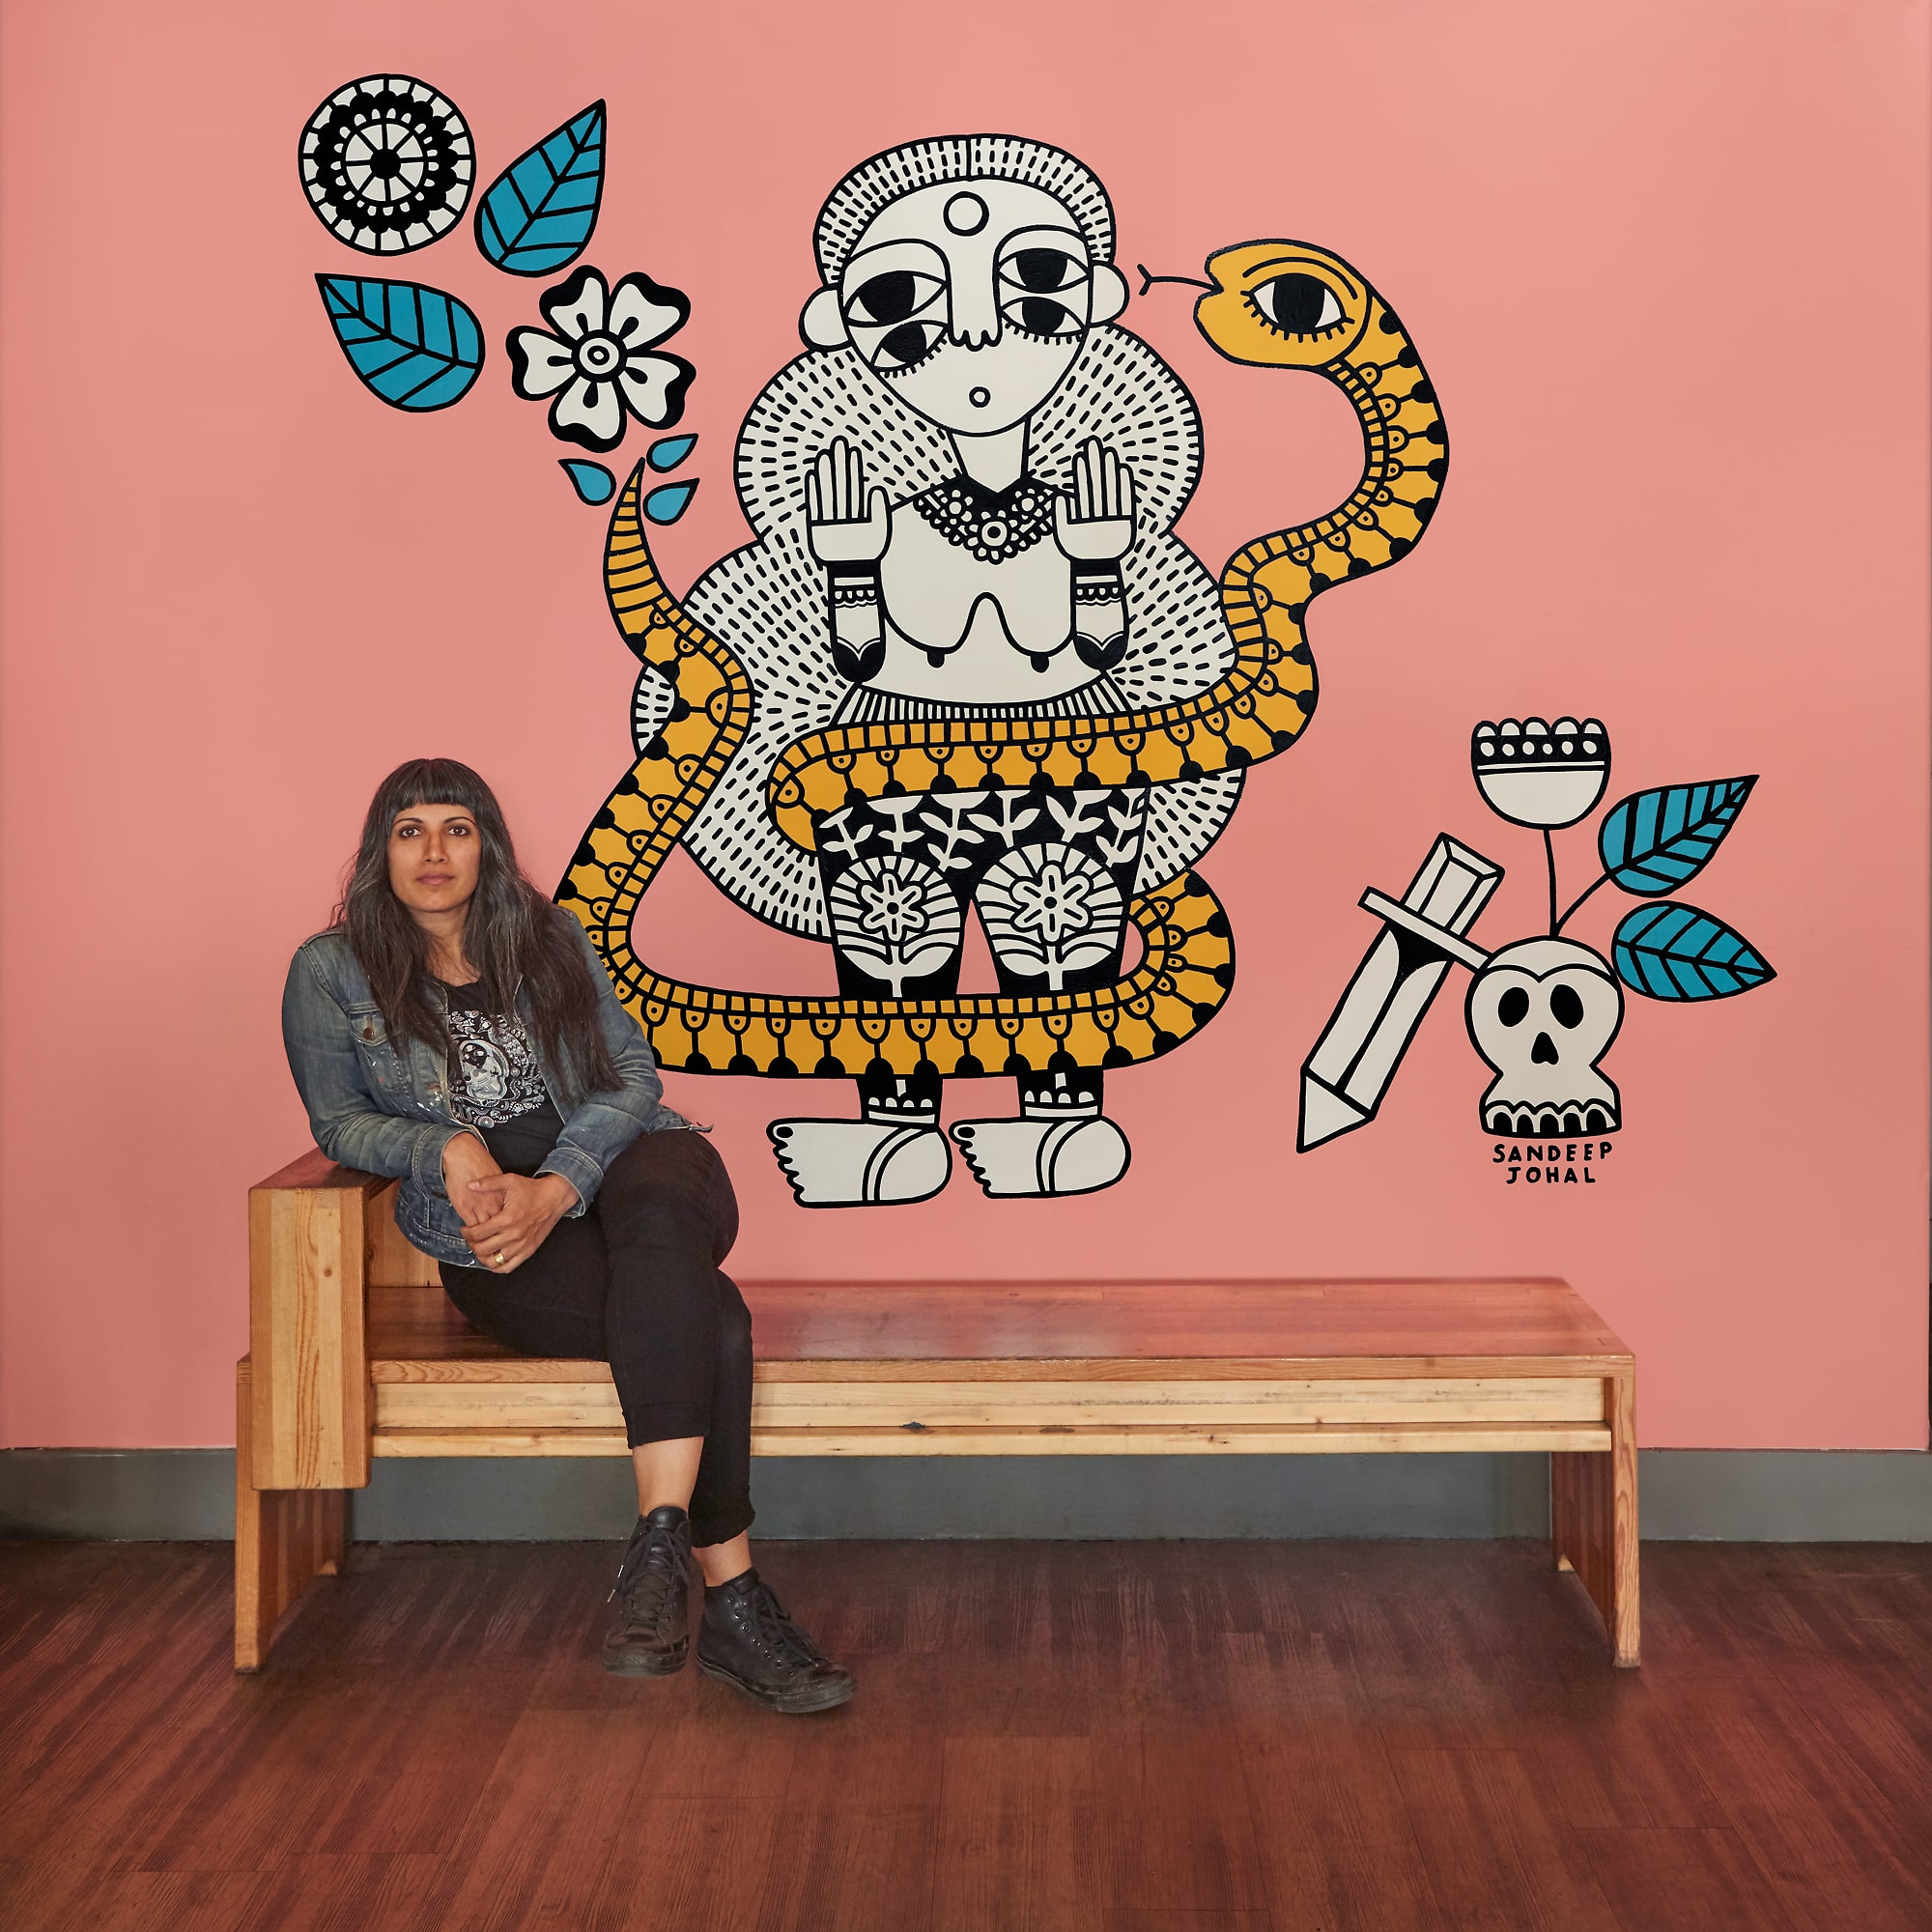 art school, cultural inspiration and changing careers with sandeep johal - Sandeep Johal puts on prestigious gallery shows, paints larger-than-life murals, has an impressive press list and gives art talks all over the Vancouver arts scene… and she just switched careers to become an artist a few years ago. In this episode, we talk about how she built her impressive career as an artist.